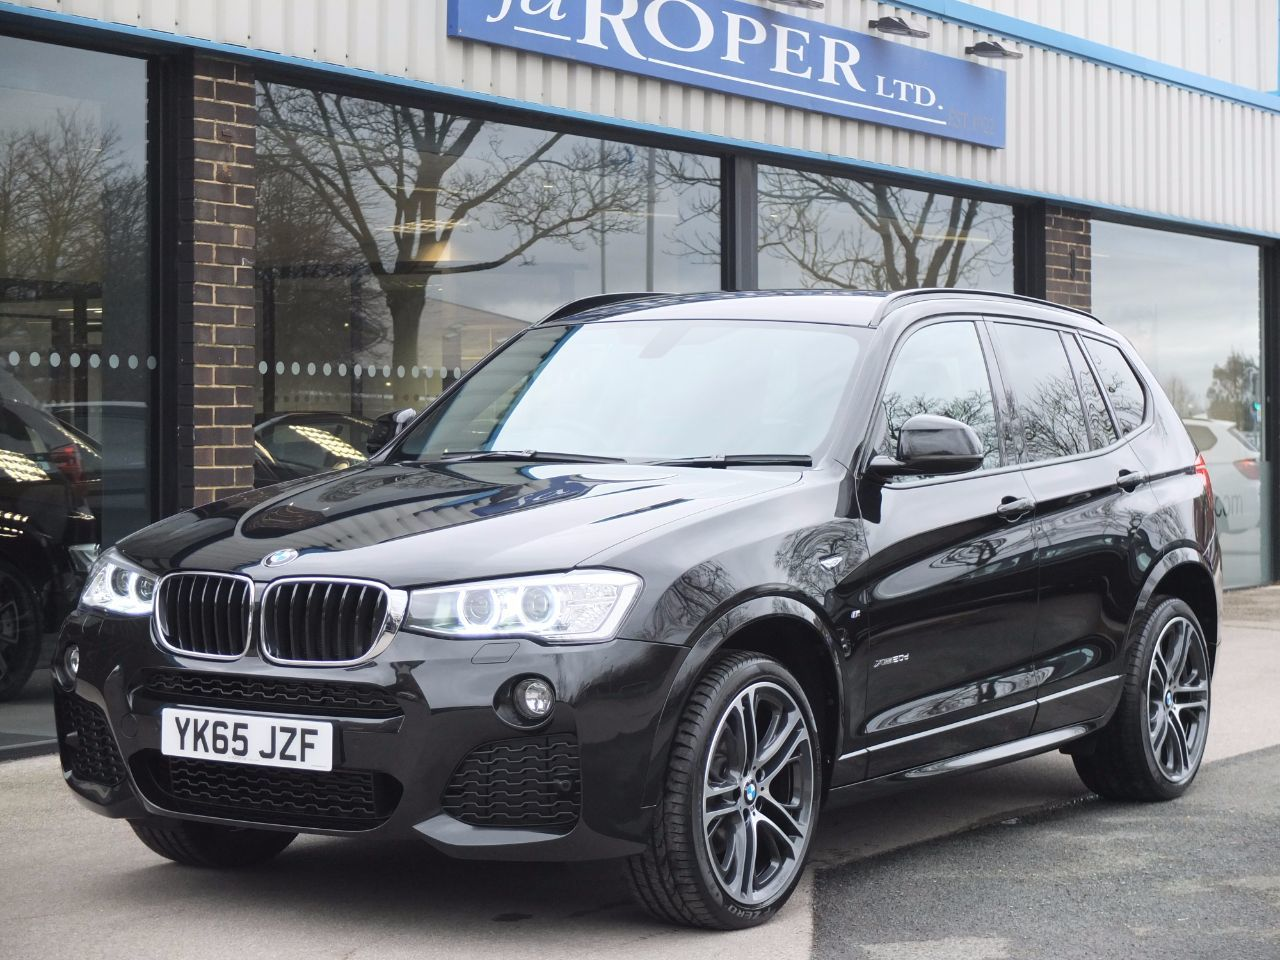 BMW X3 2.0 xDrive20d M Sport Auto M Sport Plus and Pro Media Estate Diesel Black Sapphire MetallicBMW X3 2.0 xDrive20d M Sport Auto M Sport Plus and Pro Media Estate Diesel Black Sapphire Metallic at fa Roper Ltd Bradford